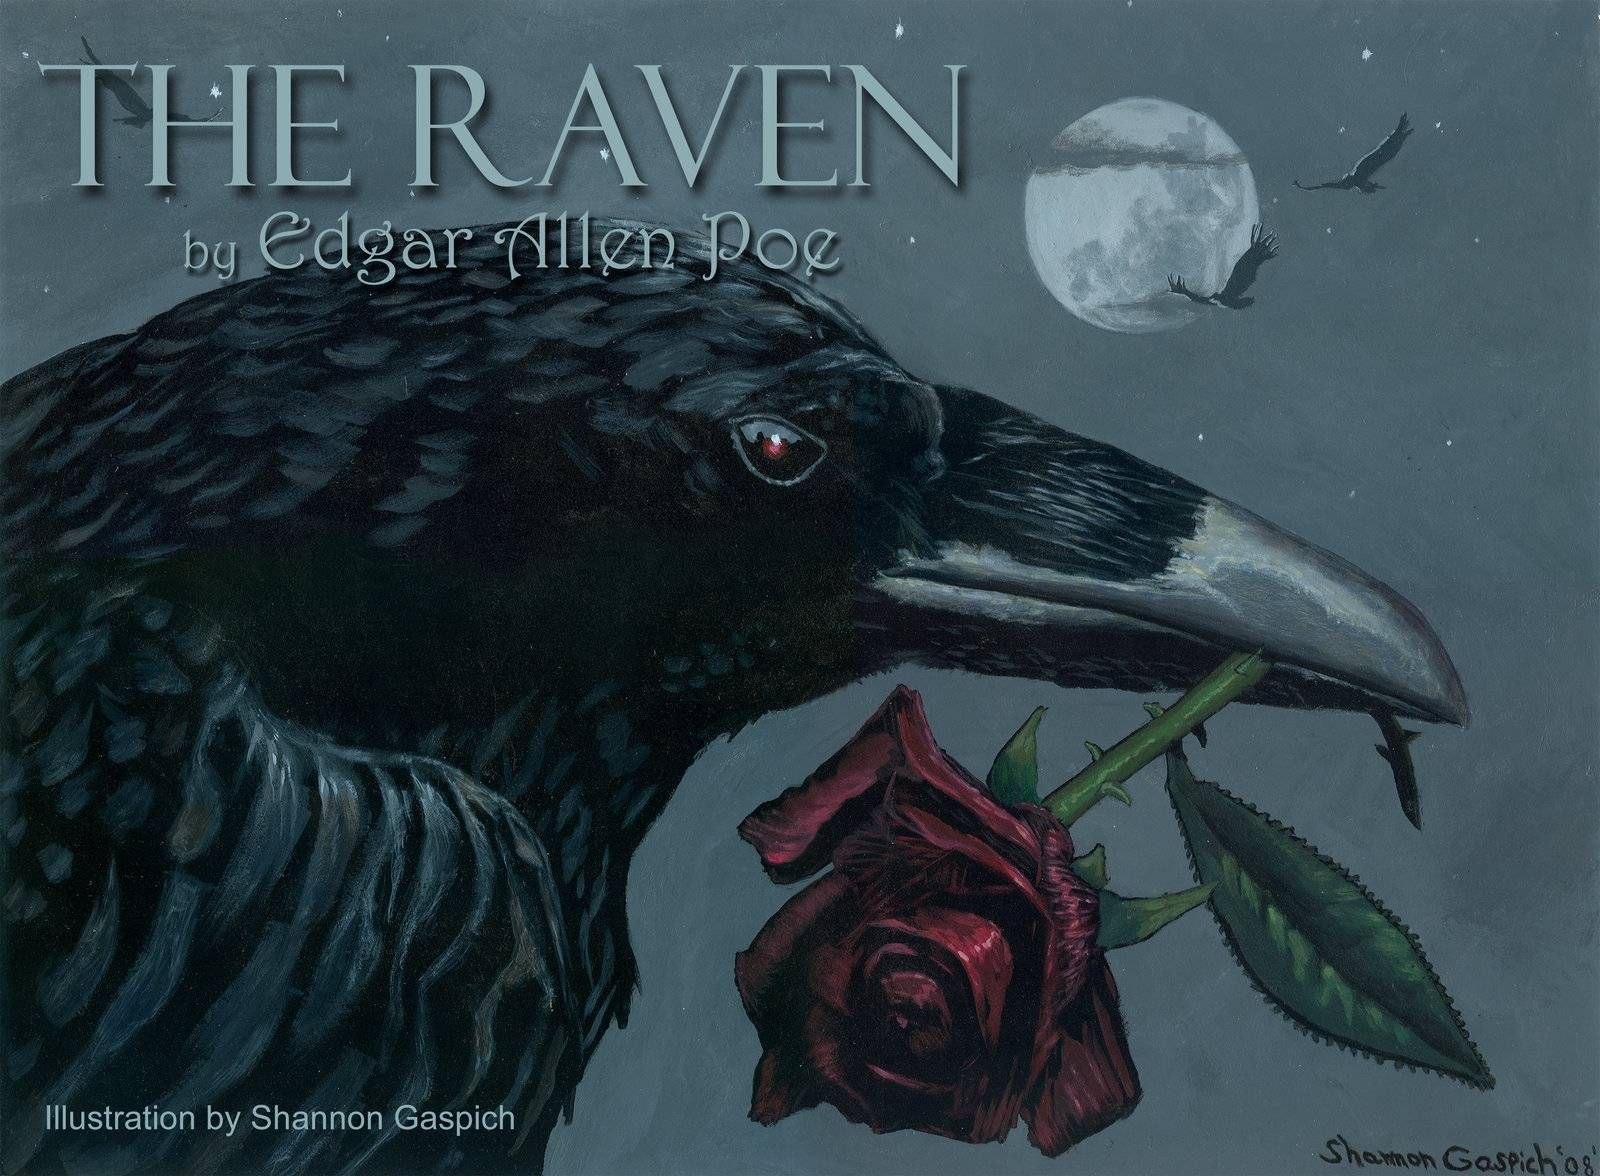 edgar allen poe s the raven essay Free essay: edgar allan poe's the raven poets can use many different devices to get their point across creating the melancholic tone in edgar allan poe's.